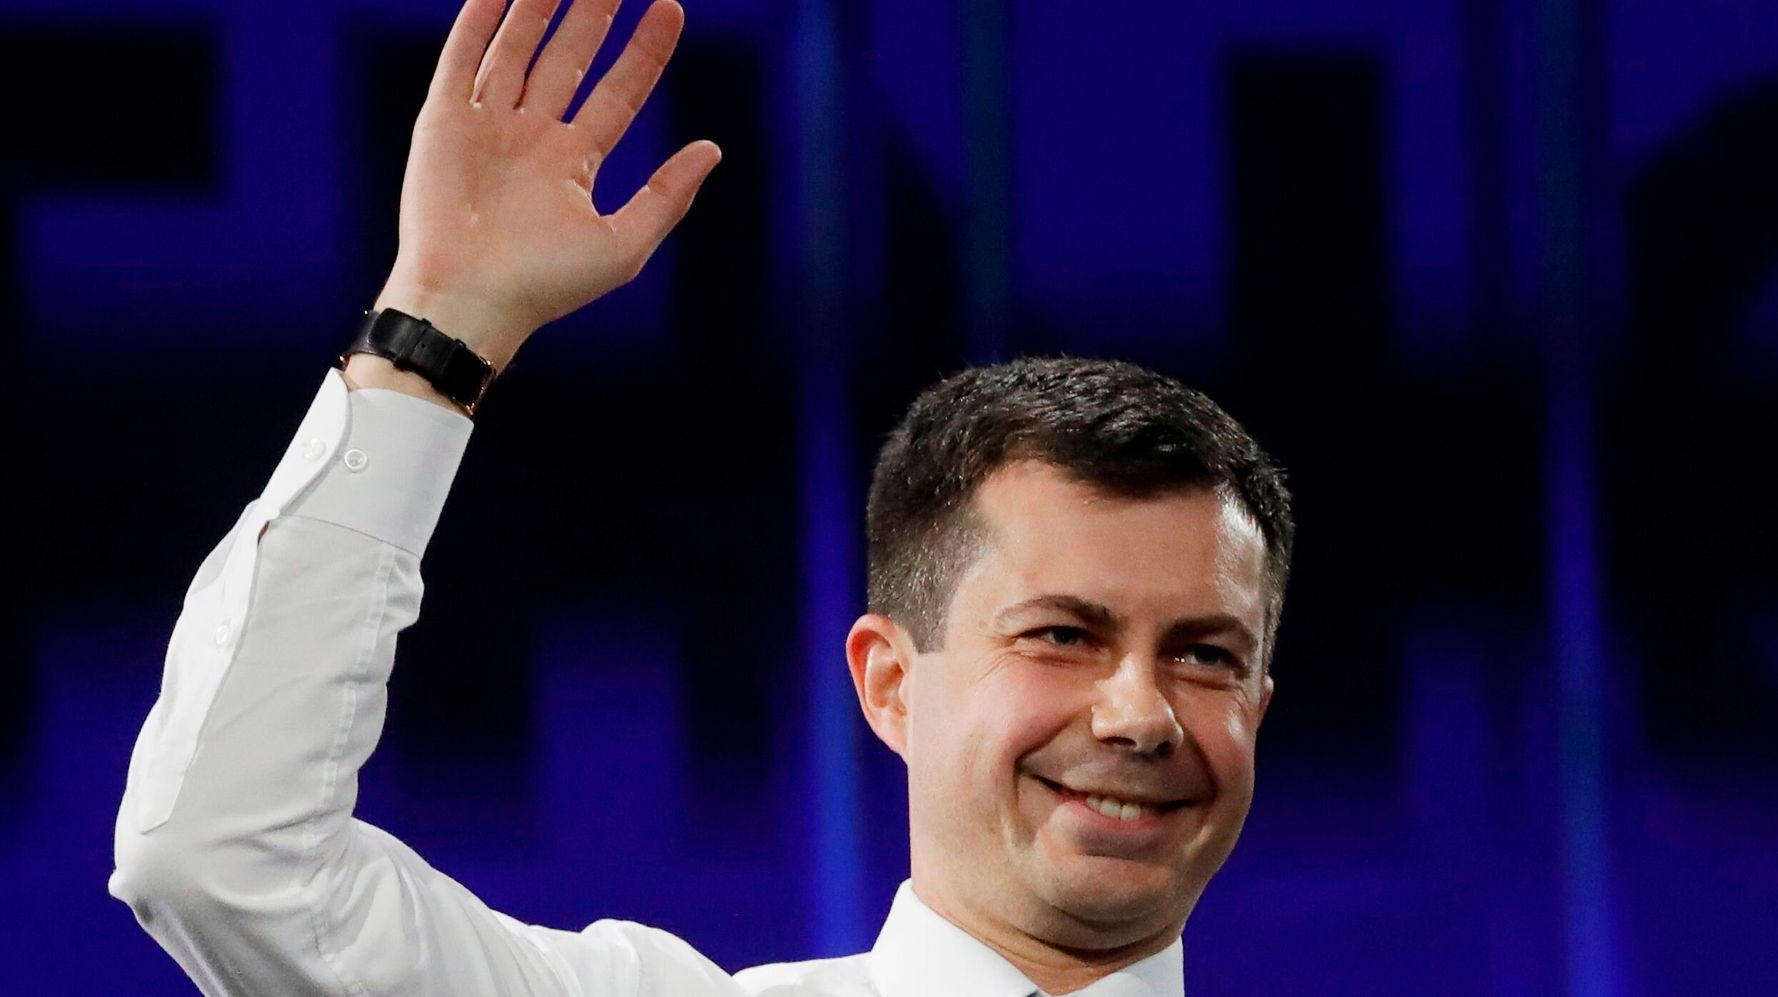 Pete Buttigieg Jets To The Top As Clear Frontrunner In New Iowa Poll